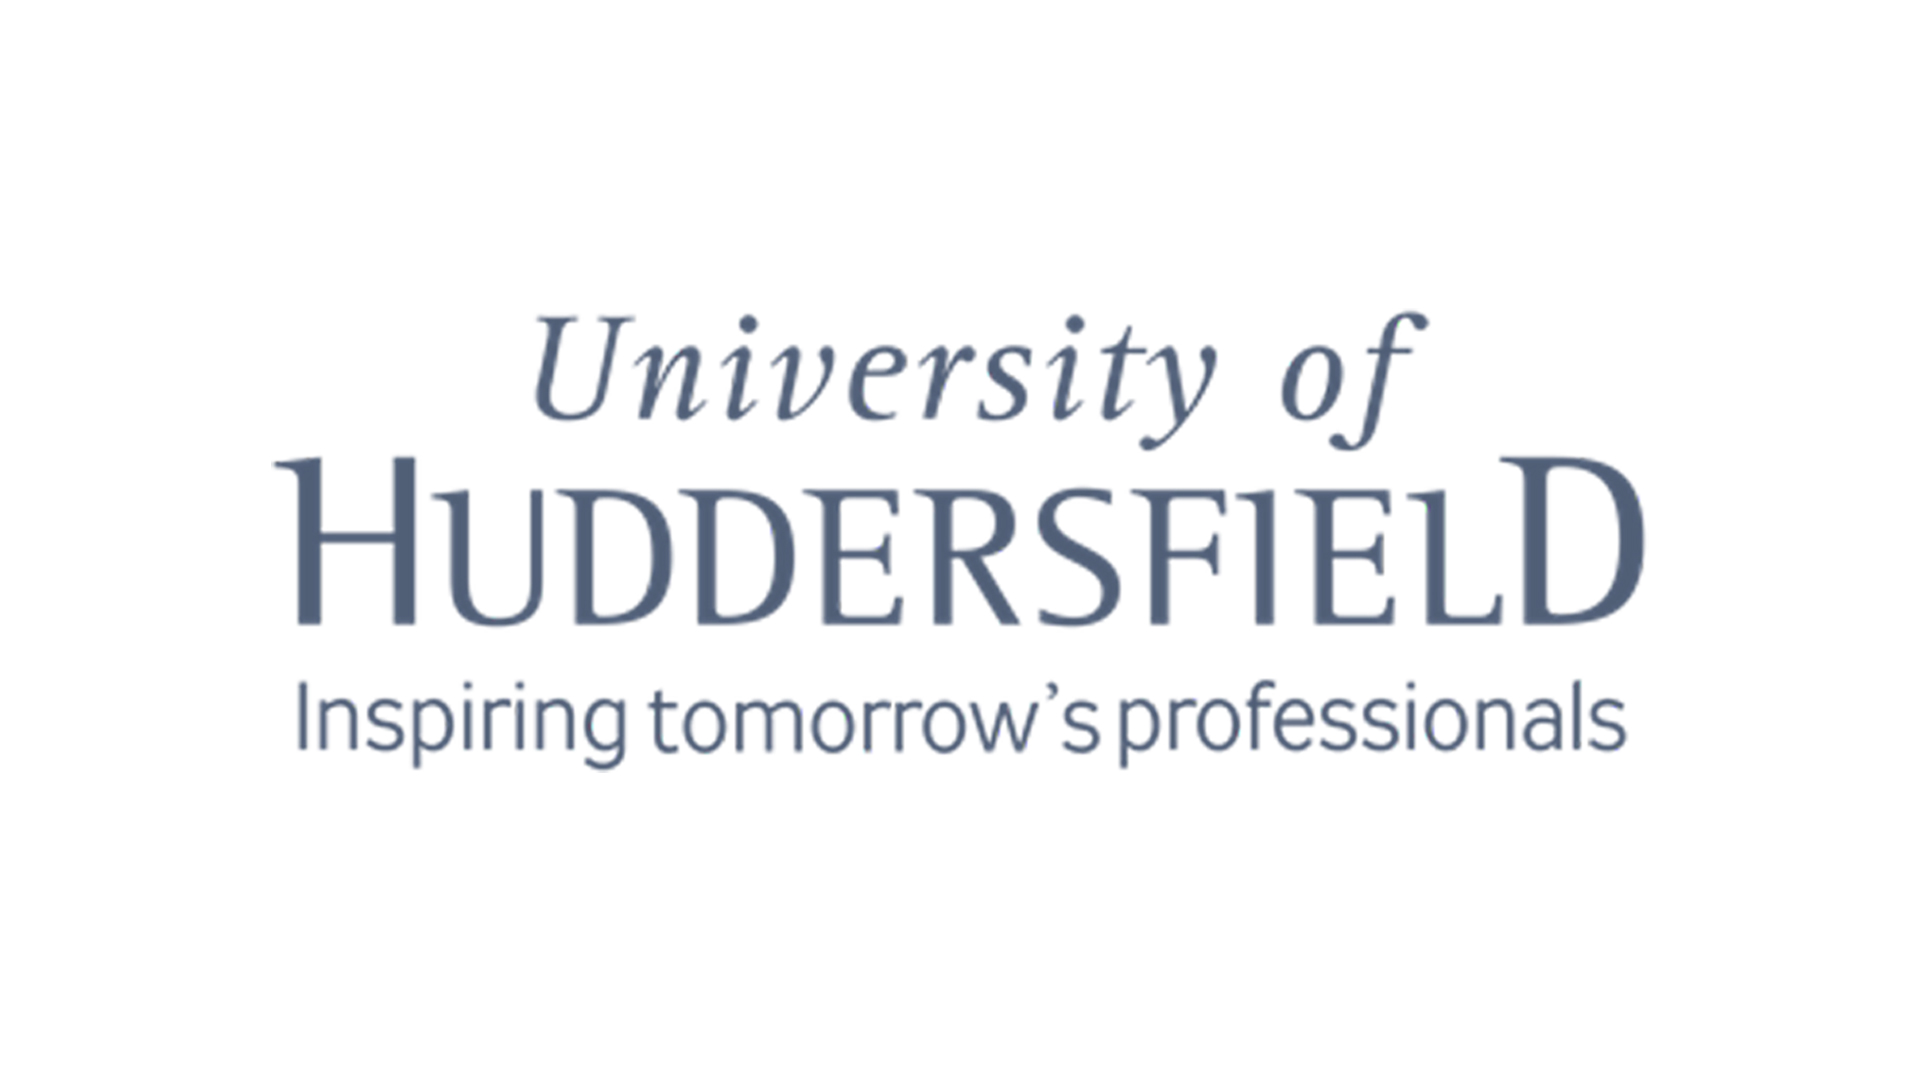 The logo for the University of Huddersfield